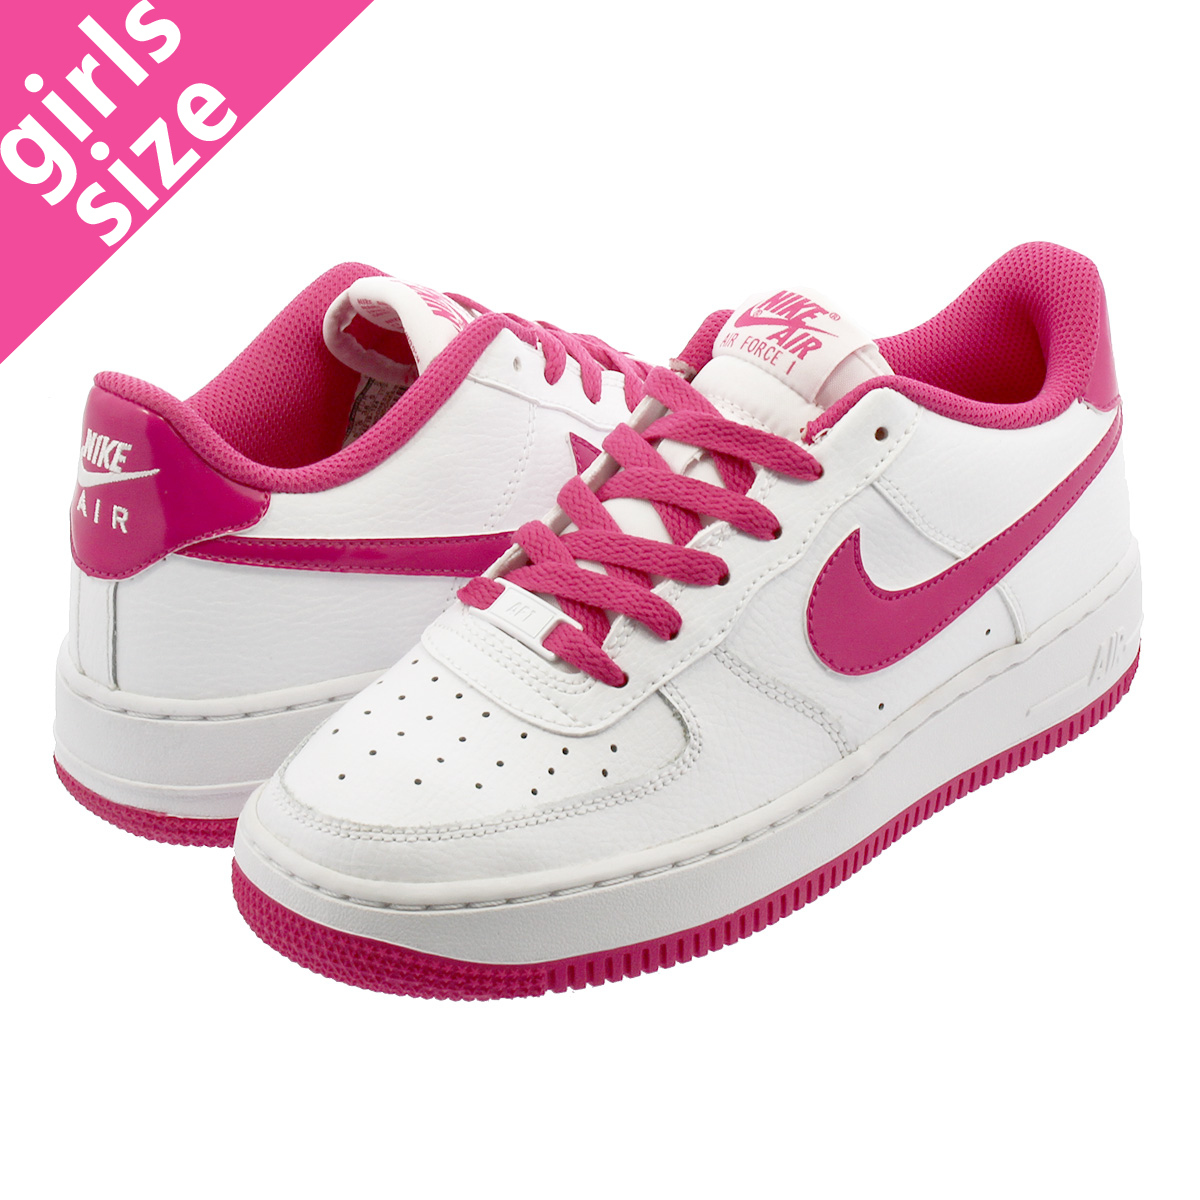 official photos 79ad3 87020 ... NIKE AIR FORCE 1 GS Nike air force 1 GS WHITE HOT PINK 314,219- ...